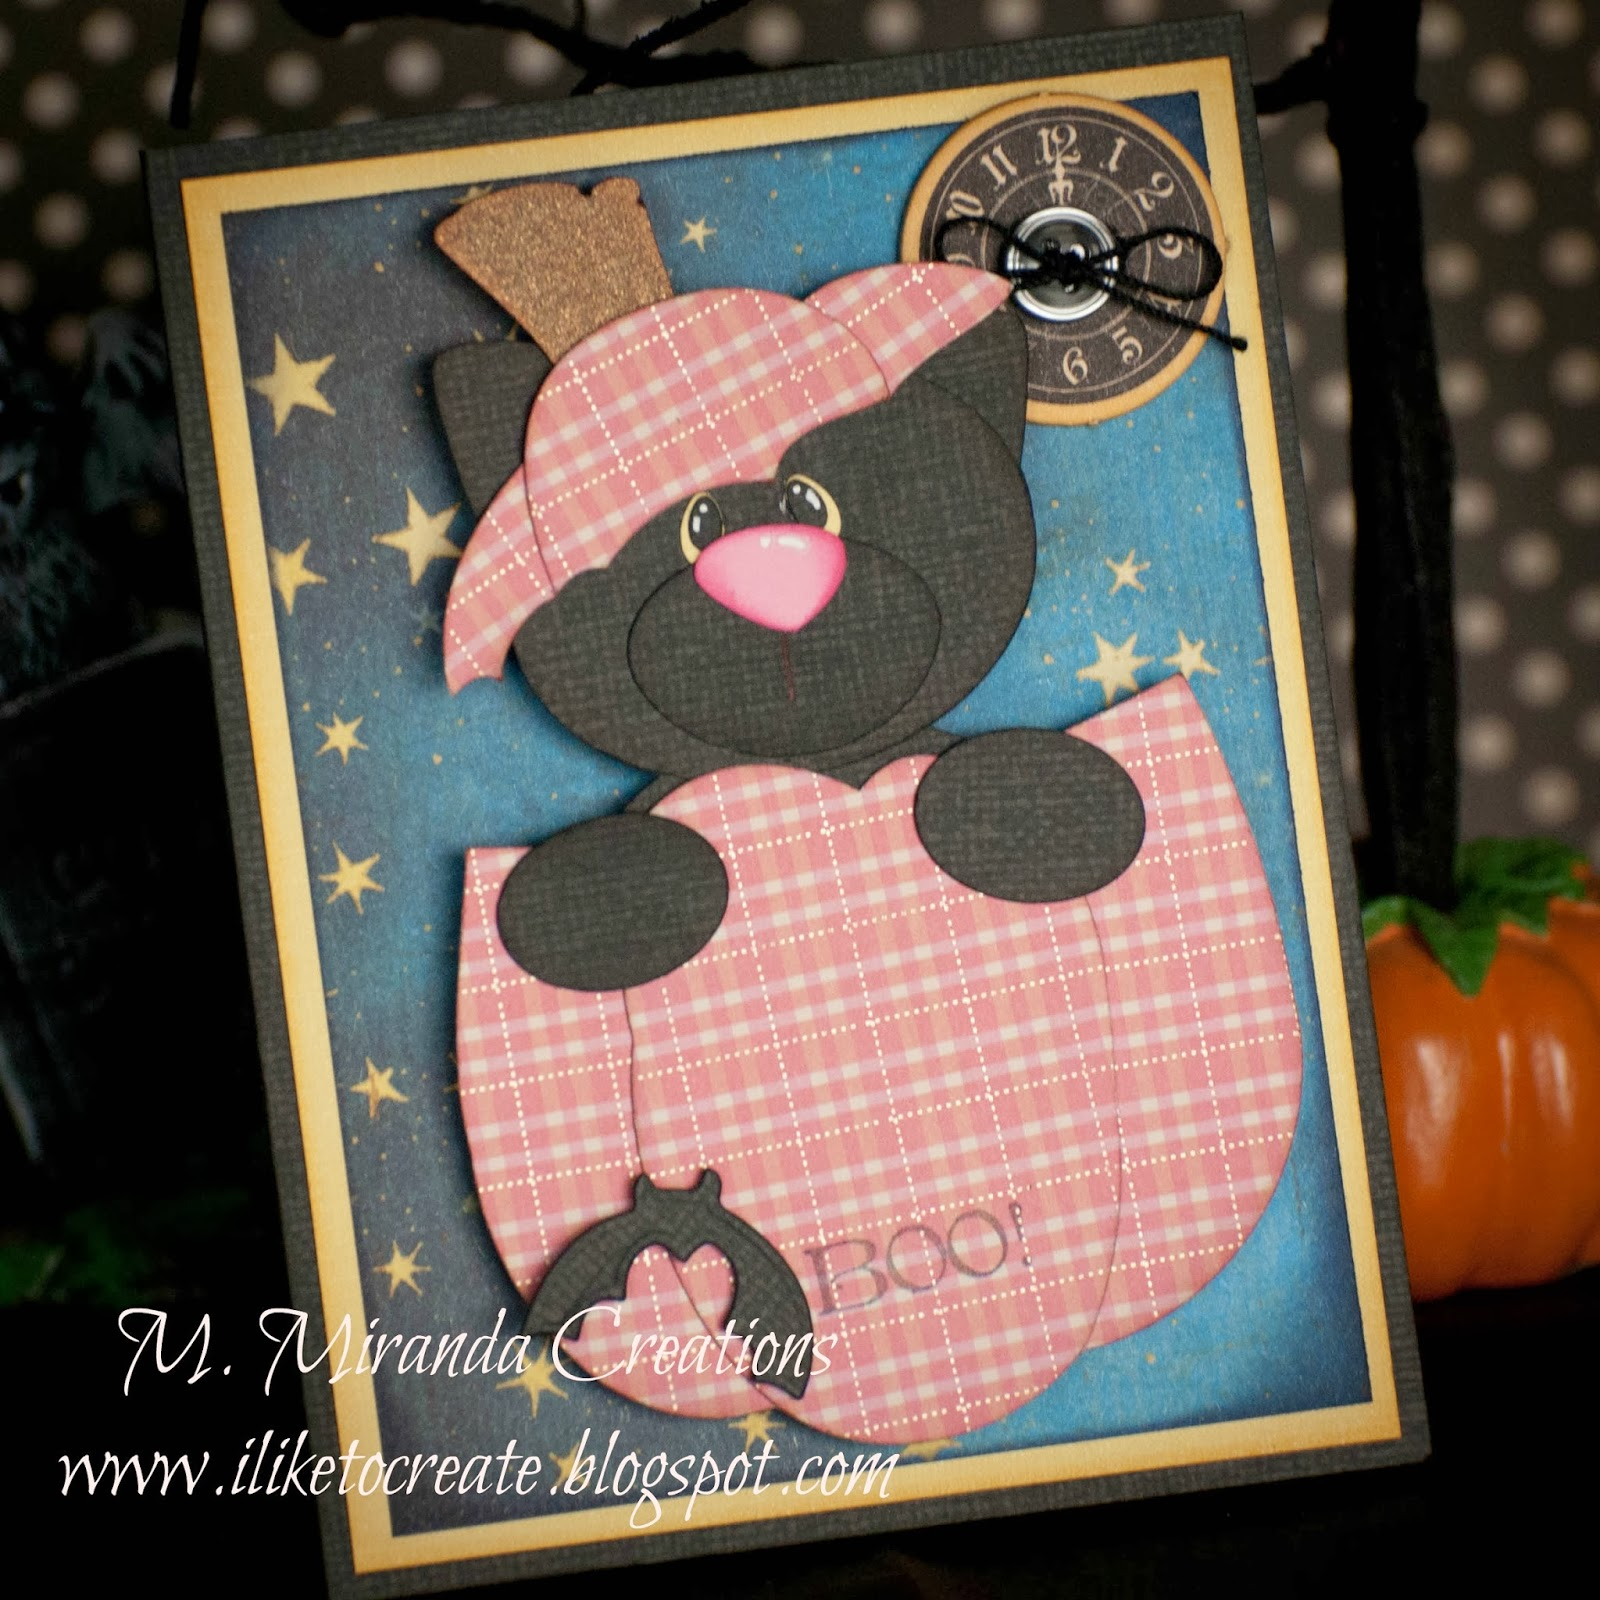 http://iliketocreate.blogspot.com/2013/09/scaredy-cat-says-boo.html